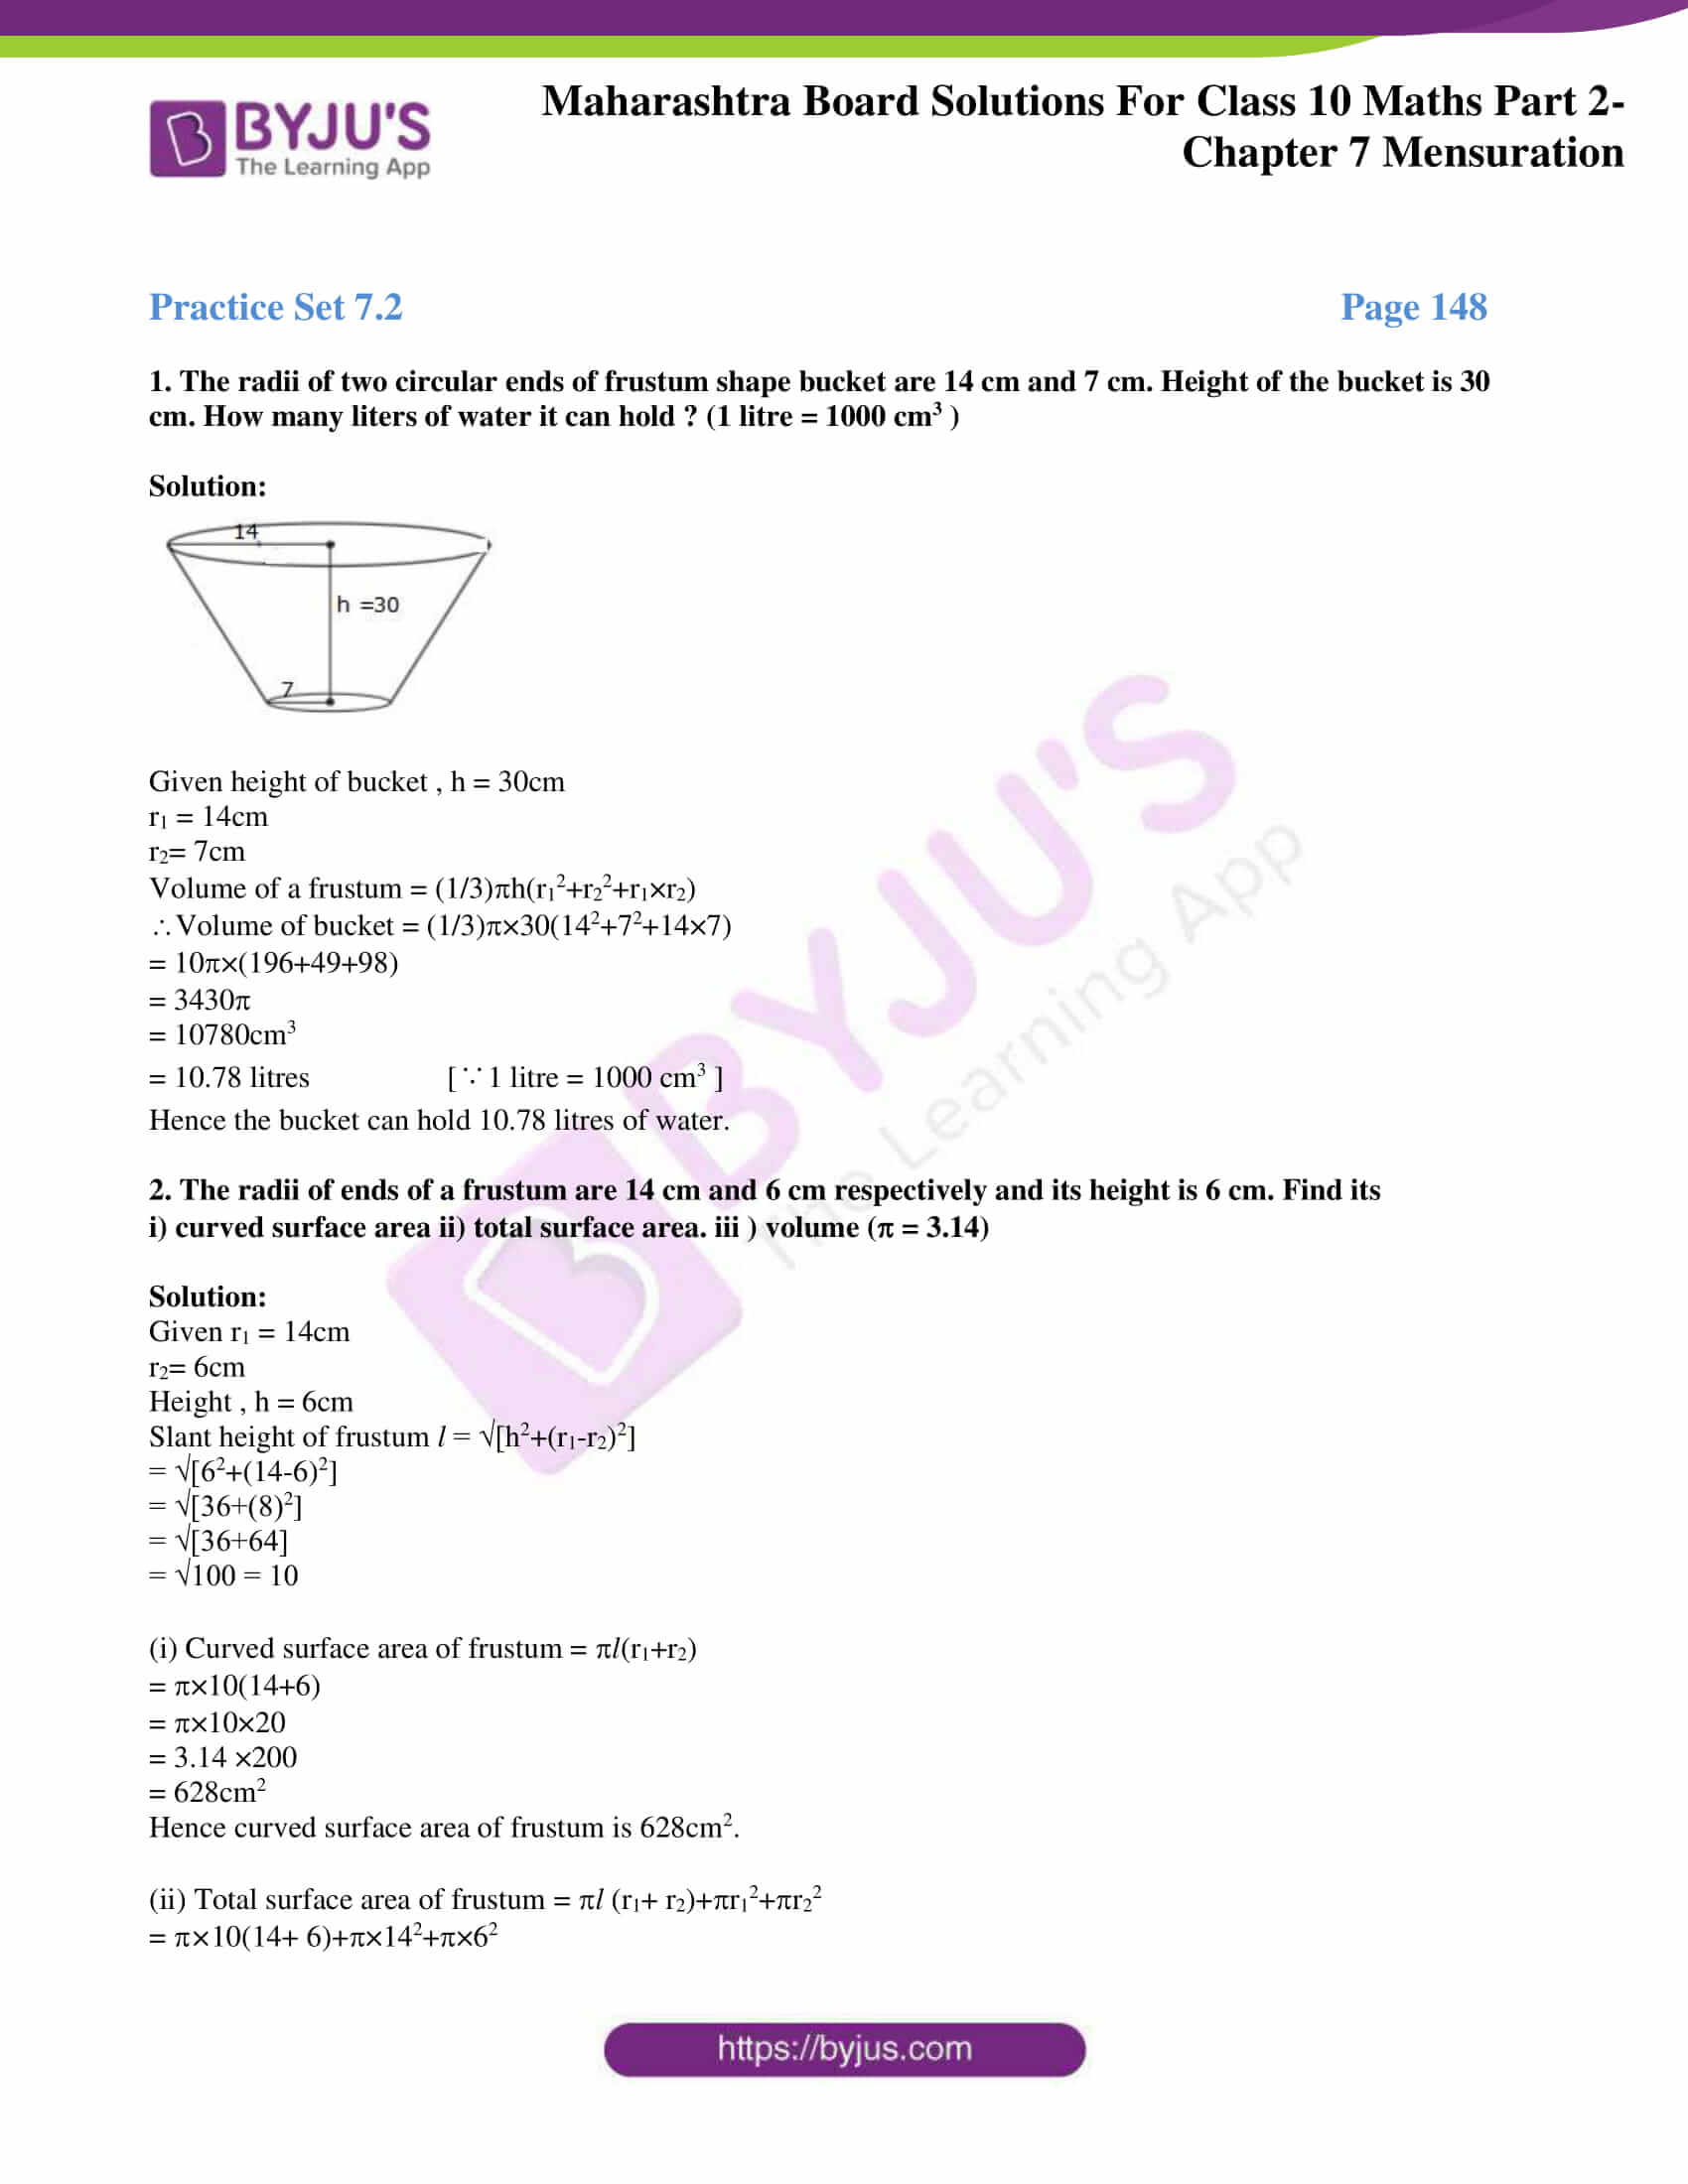 msbshse sol class 10 maths part 2 chapter 7 08